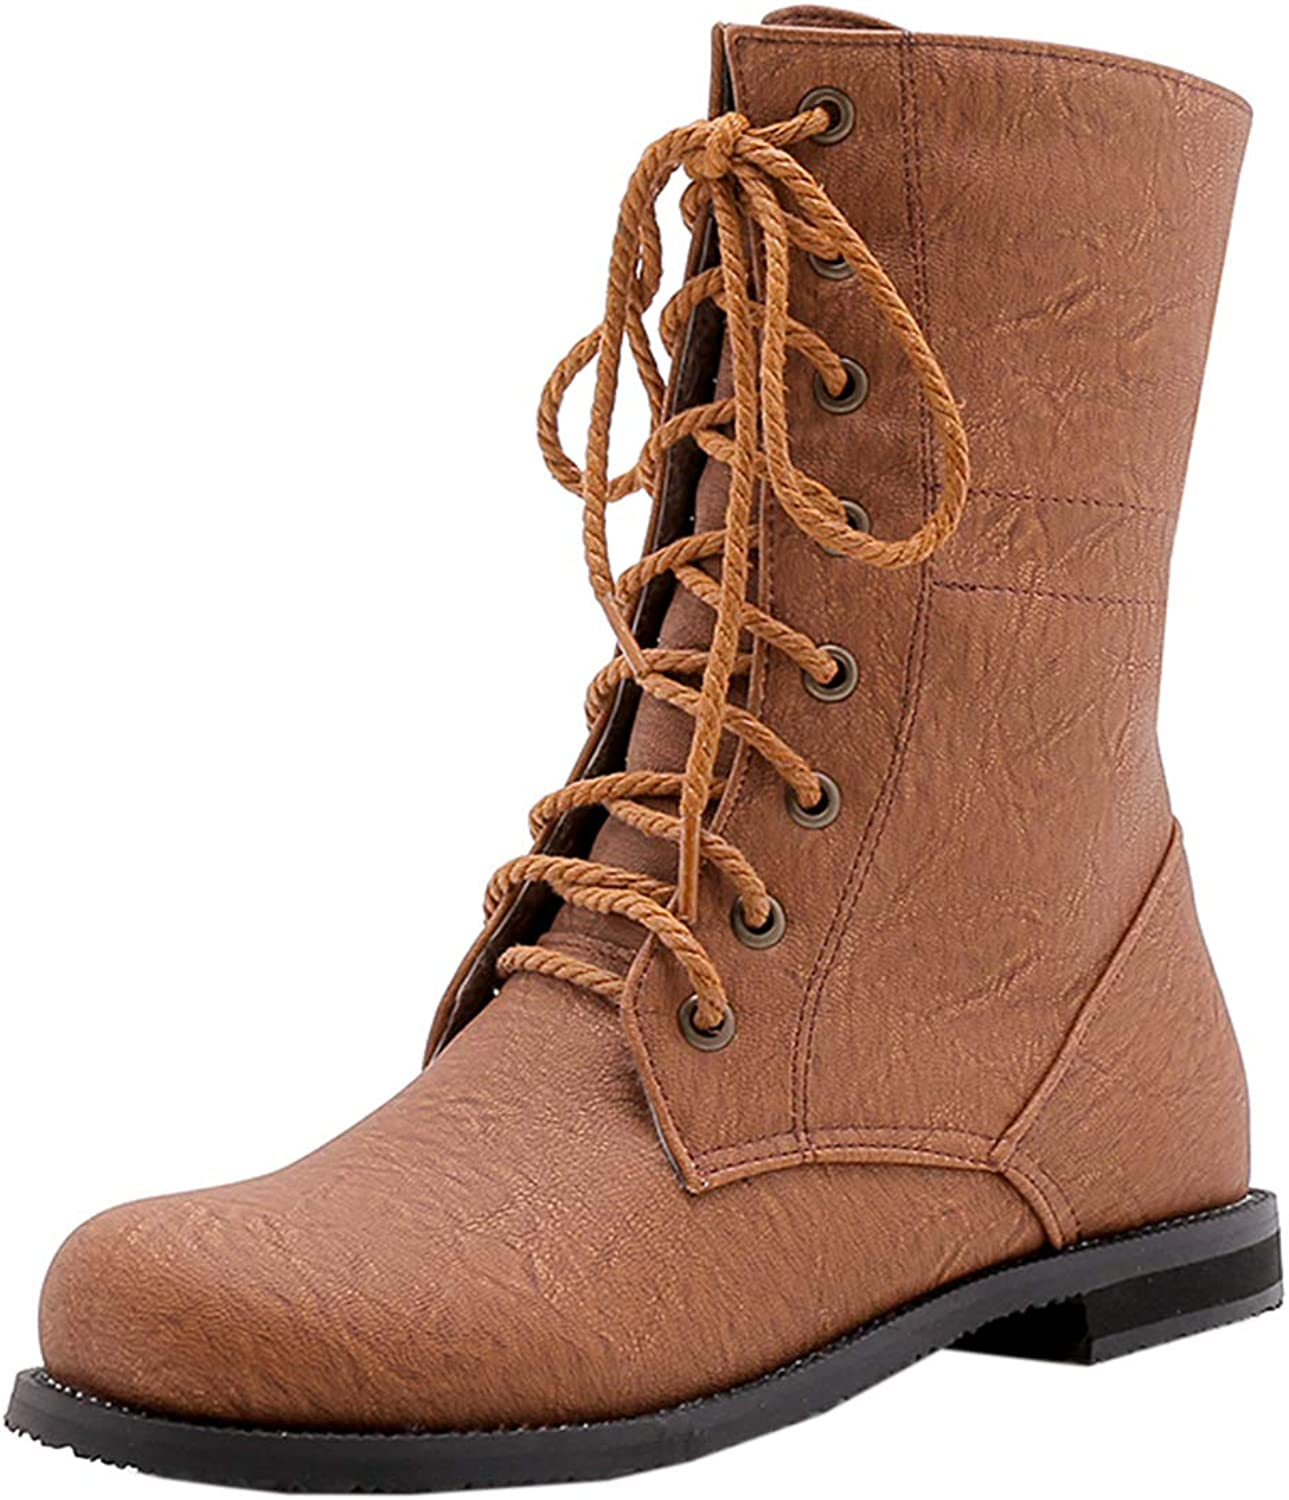 Vitalo Womens Lace Up Military Flat Heel Combat Ankle Boot Biker Mid Calf Boots